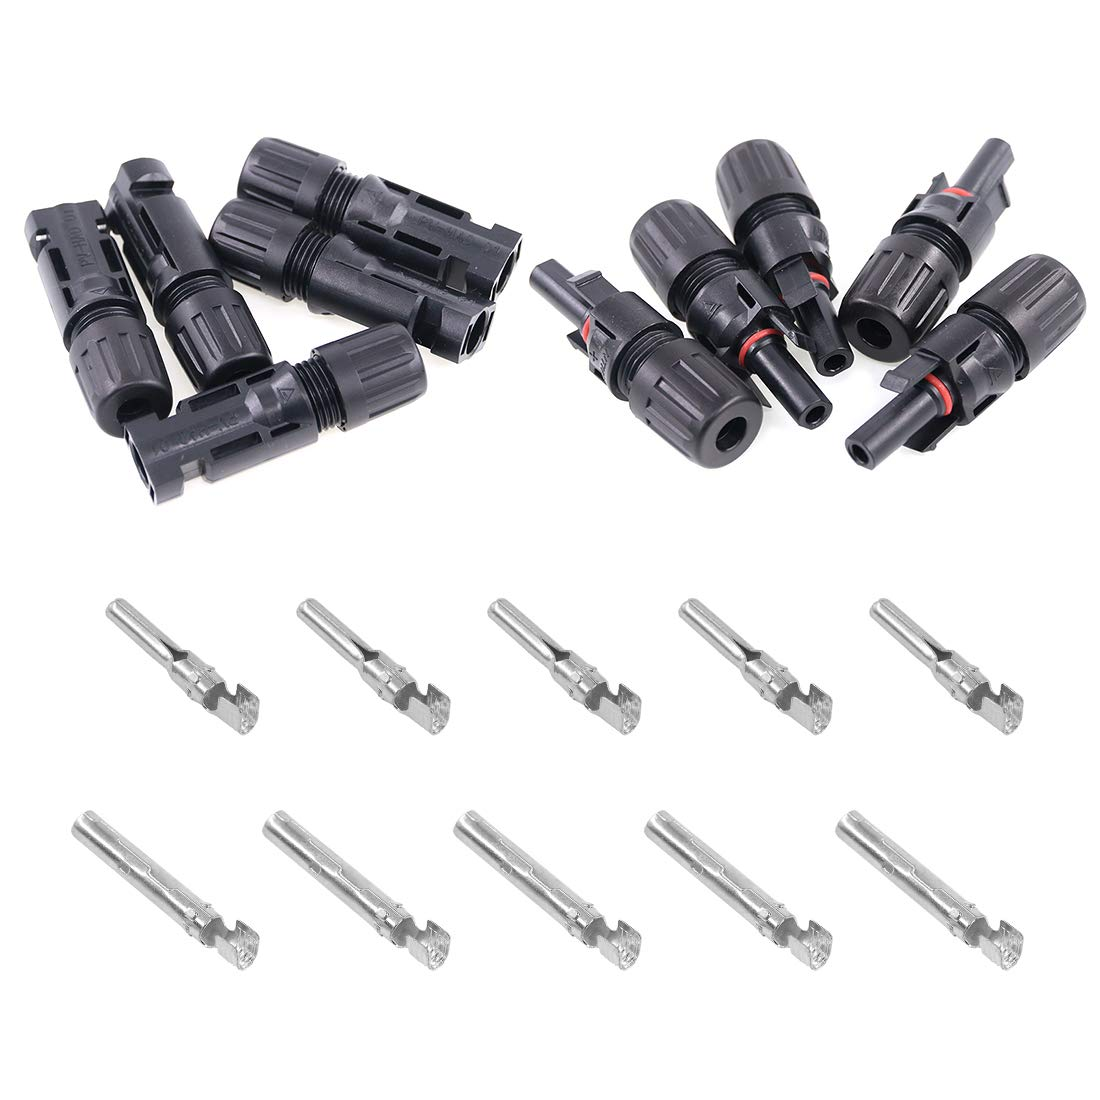 M//5F and F//5M Glarks MC4 Solar Panel Connectors 1 Male to 5 Female and 1 Female to 5 Male T Branch Connectors Cable Coupler Combiner and 5 Pair MC4 Male//Female Solar Panel Cable Connectors Set